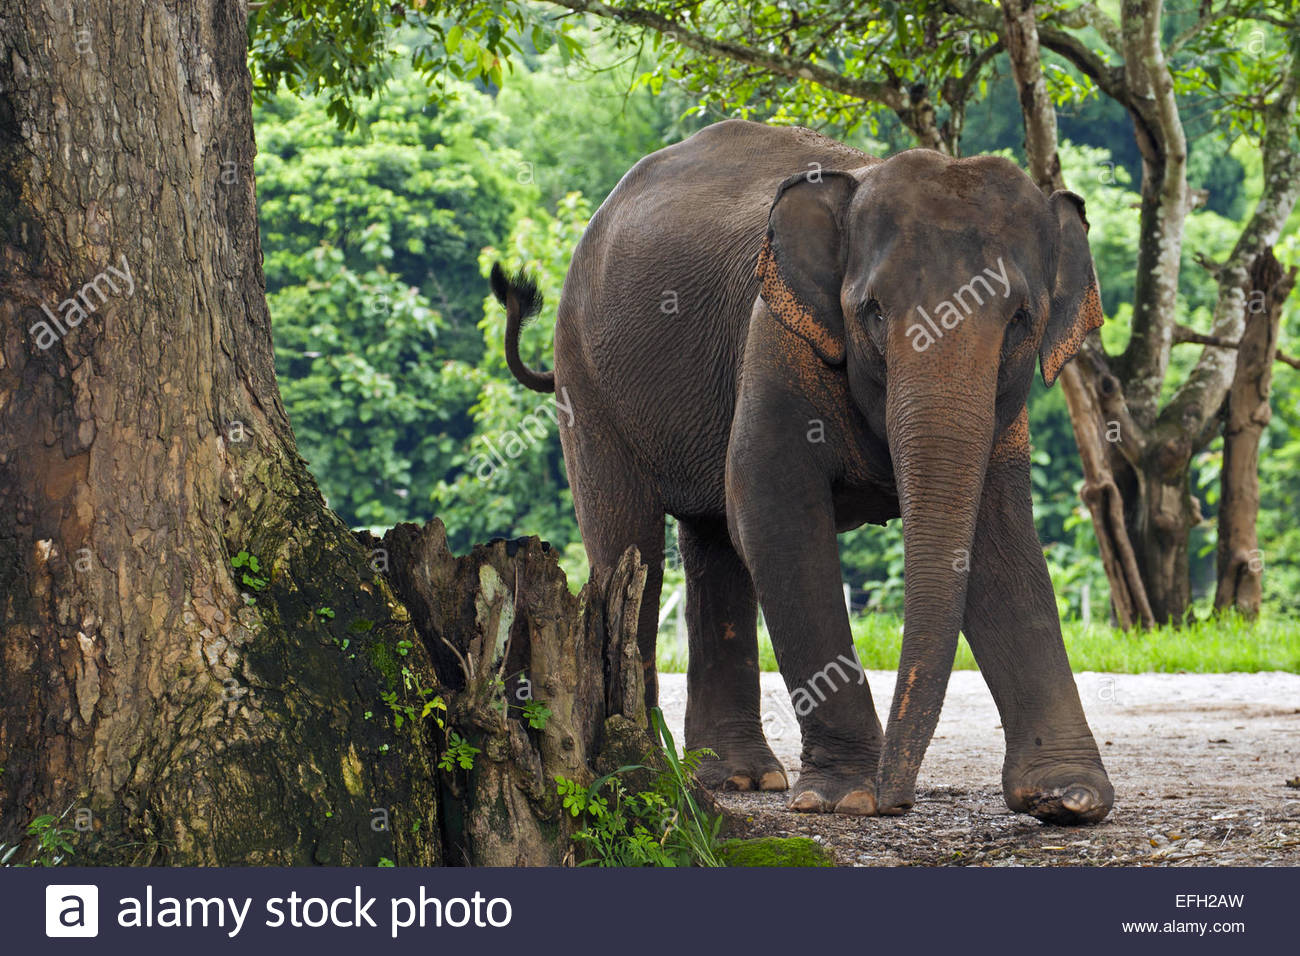 Crippled Asian elephant with injured foot, disabled by land mine, at rescue and rehabilitation center in Chiang - Stock Image